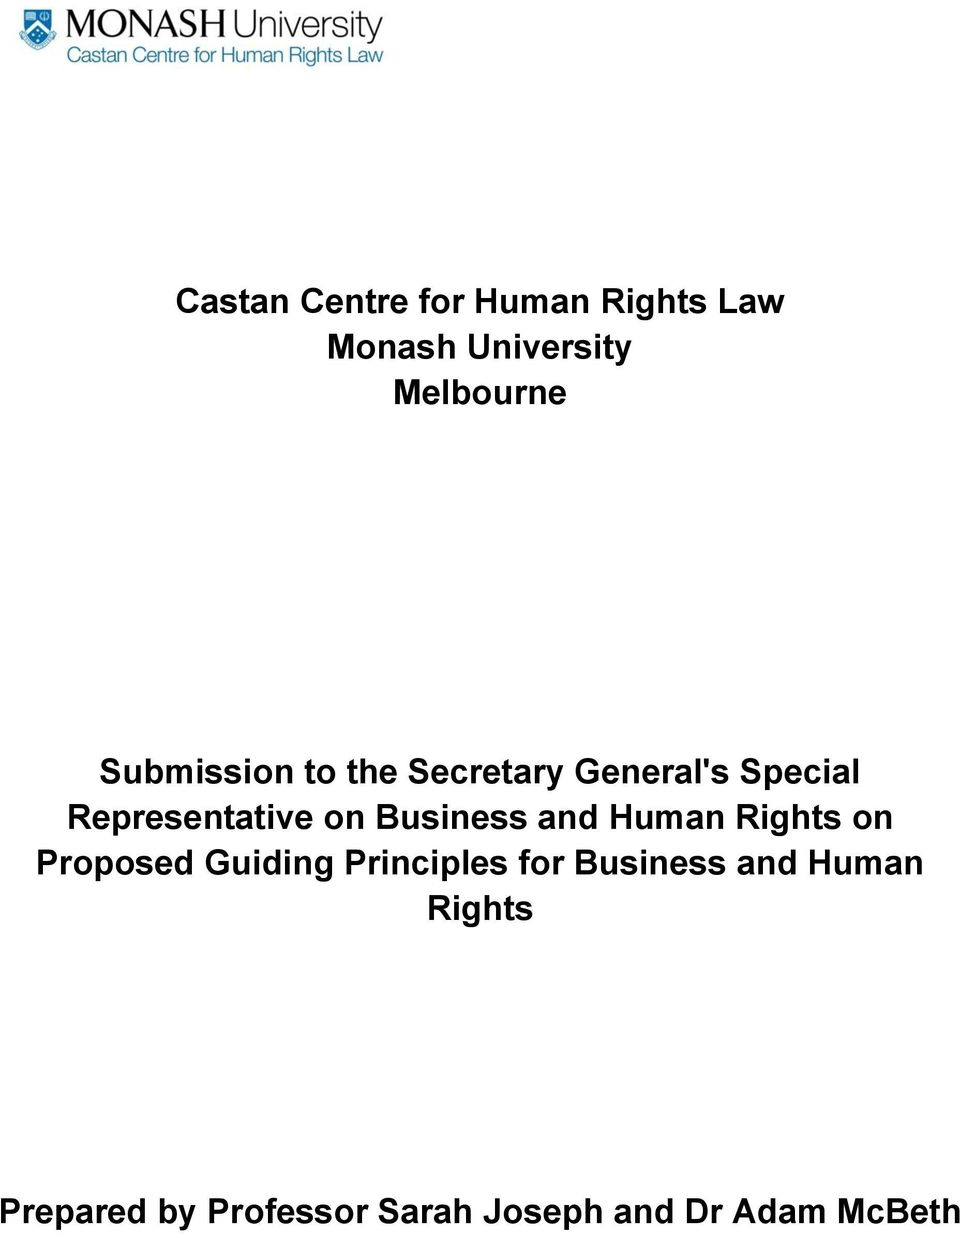 Business and Human Rights on Proposed Guiding Principles for